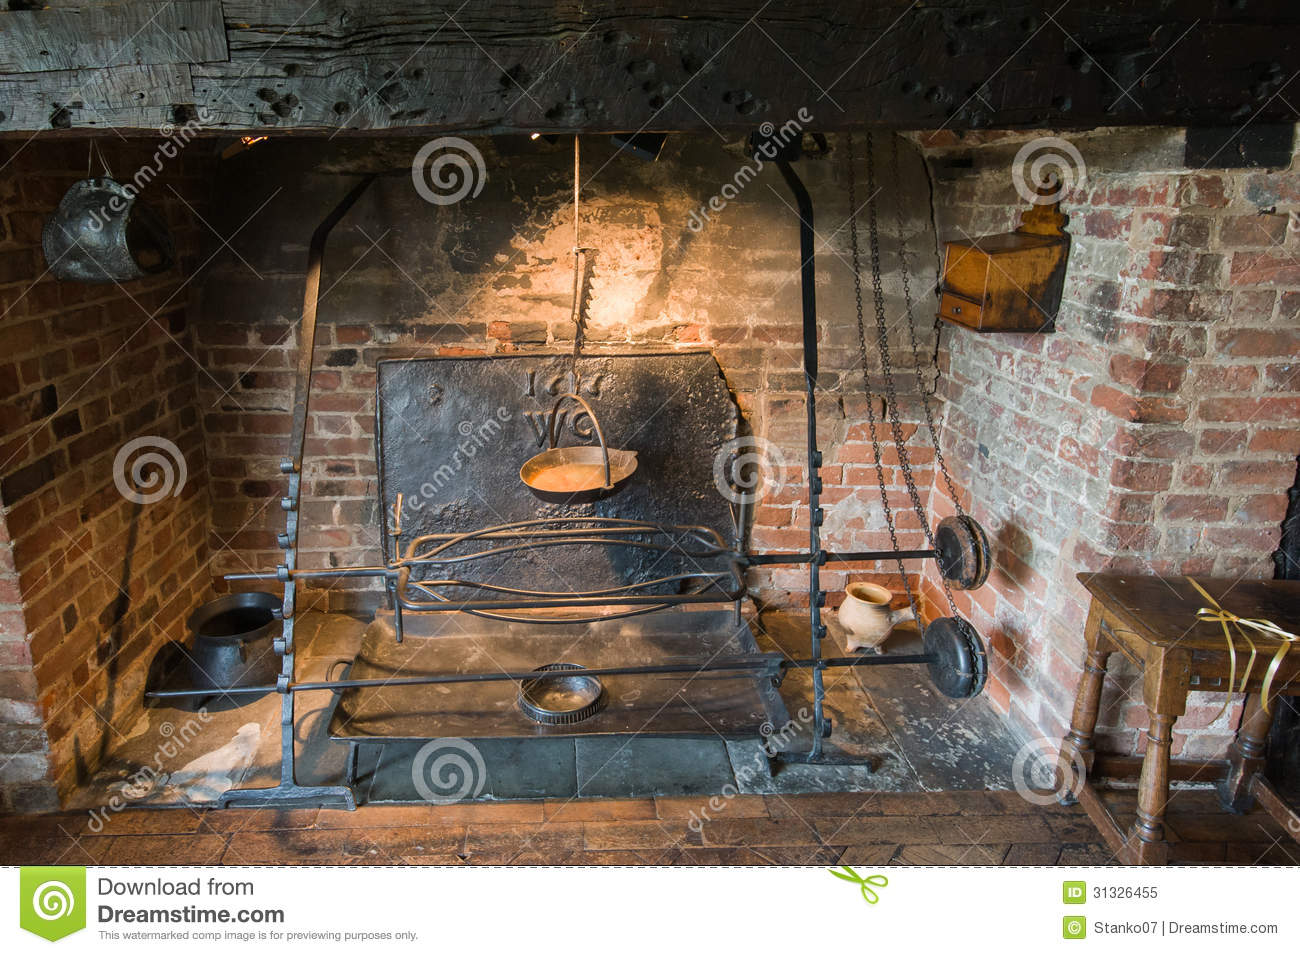 Ancient Fireplace Royalty Free Stock Photos - Image: 31326308